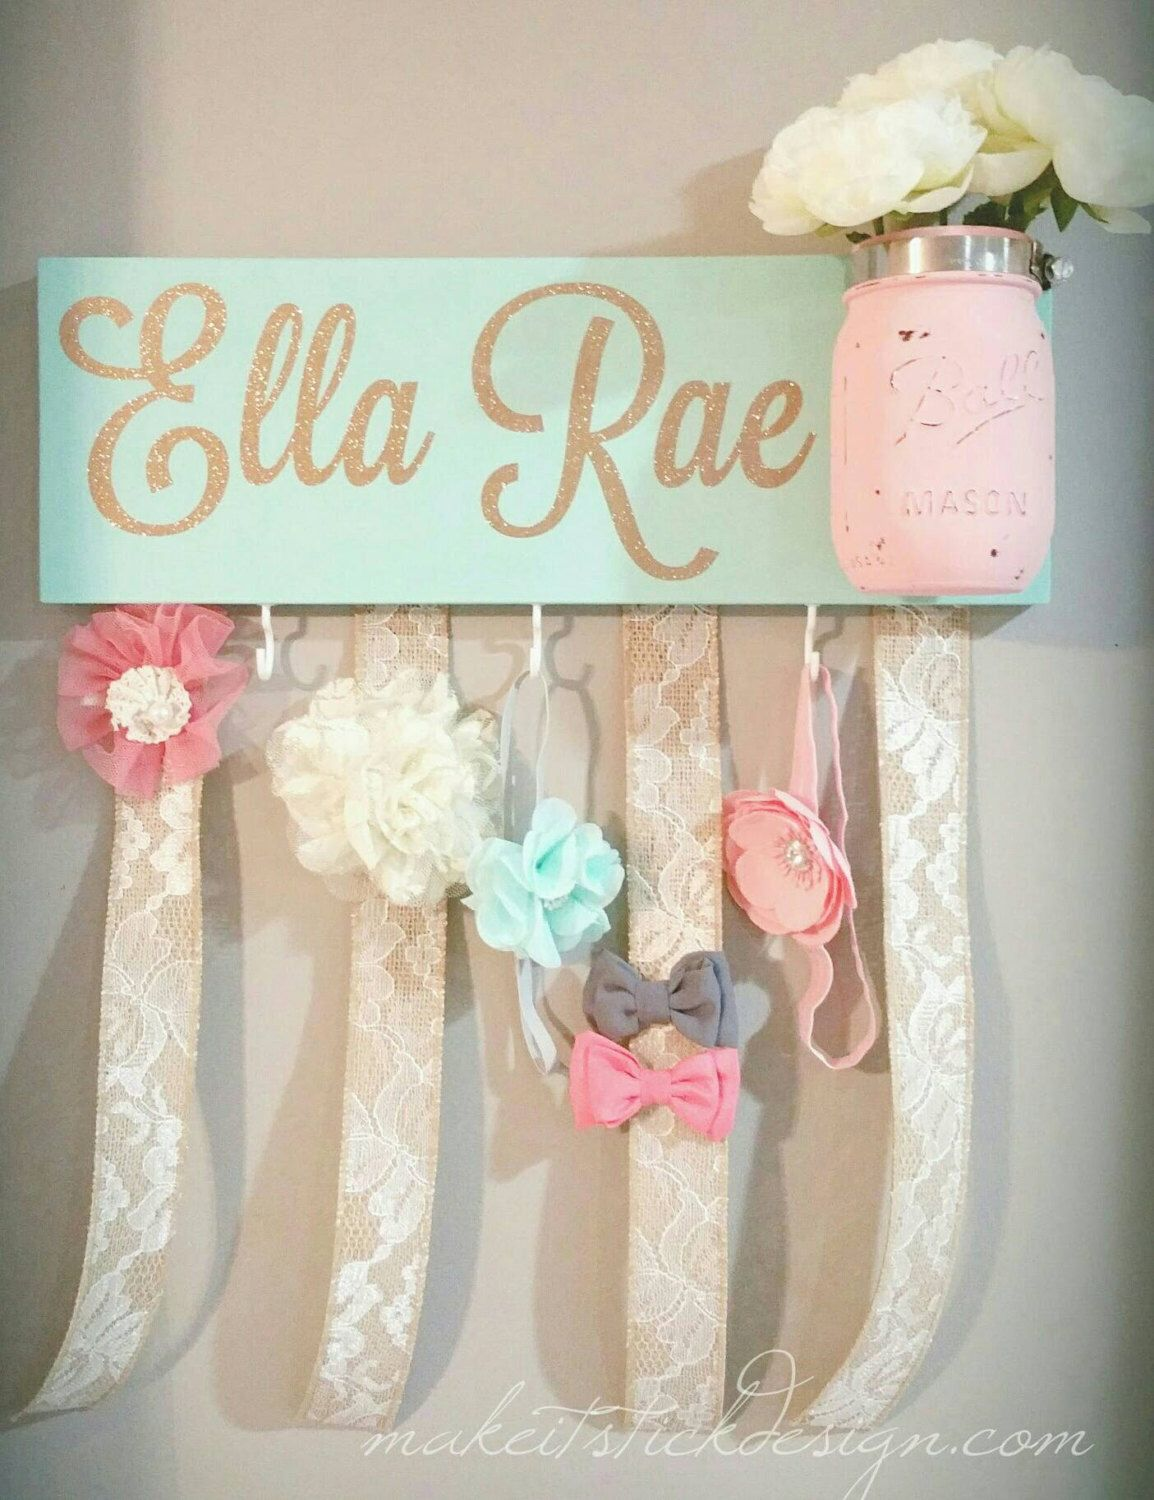 Headband bow holder custom name board baby girl by headband bow holder custom name board baby girl by makeitstickdesigns on etsy httpsetsylisting268360497headband bow holder custom name board solutioingenieria Gallery